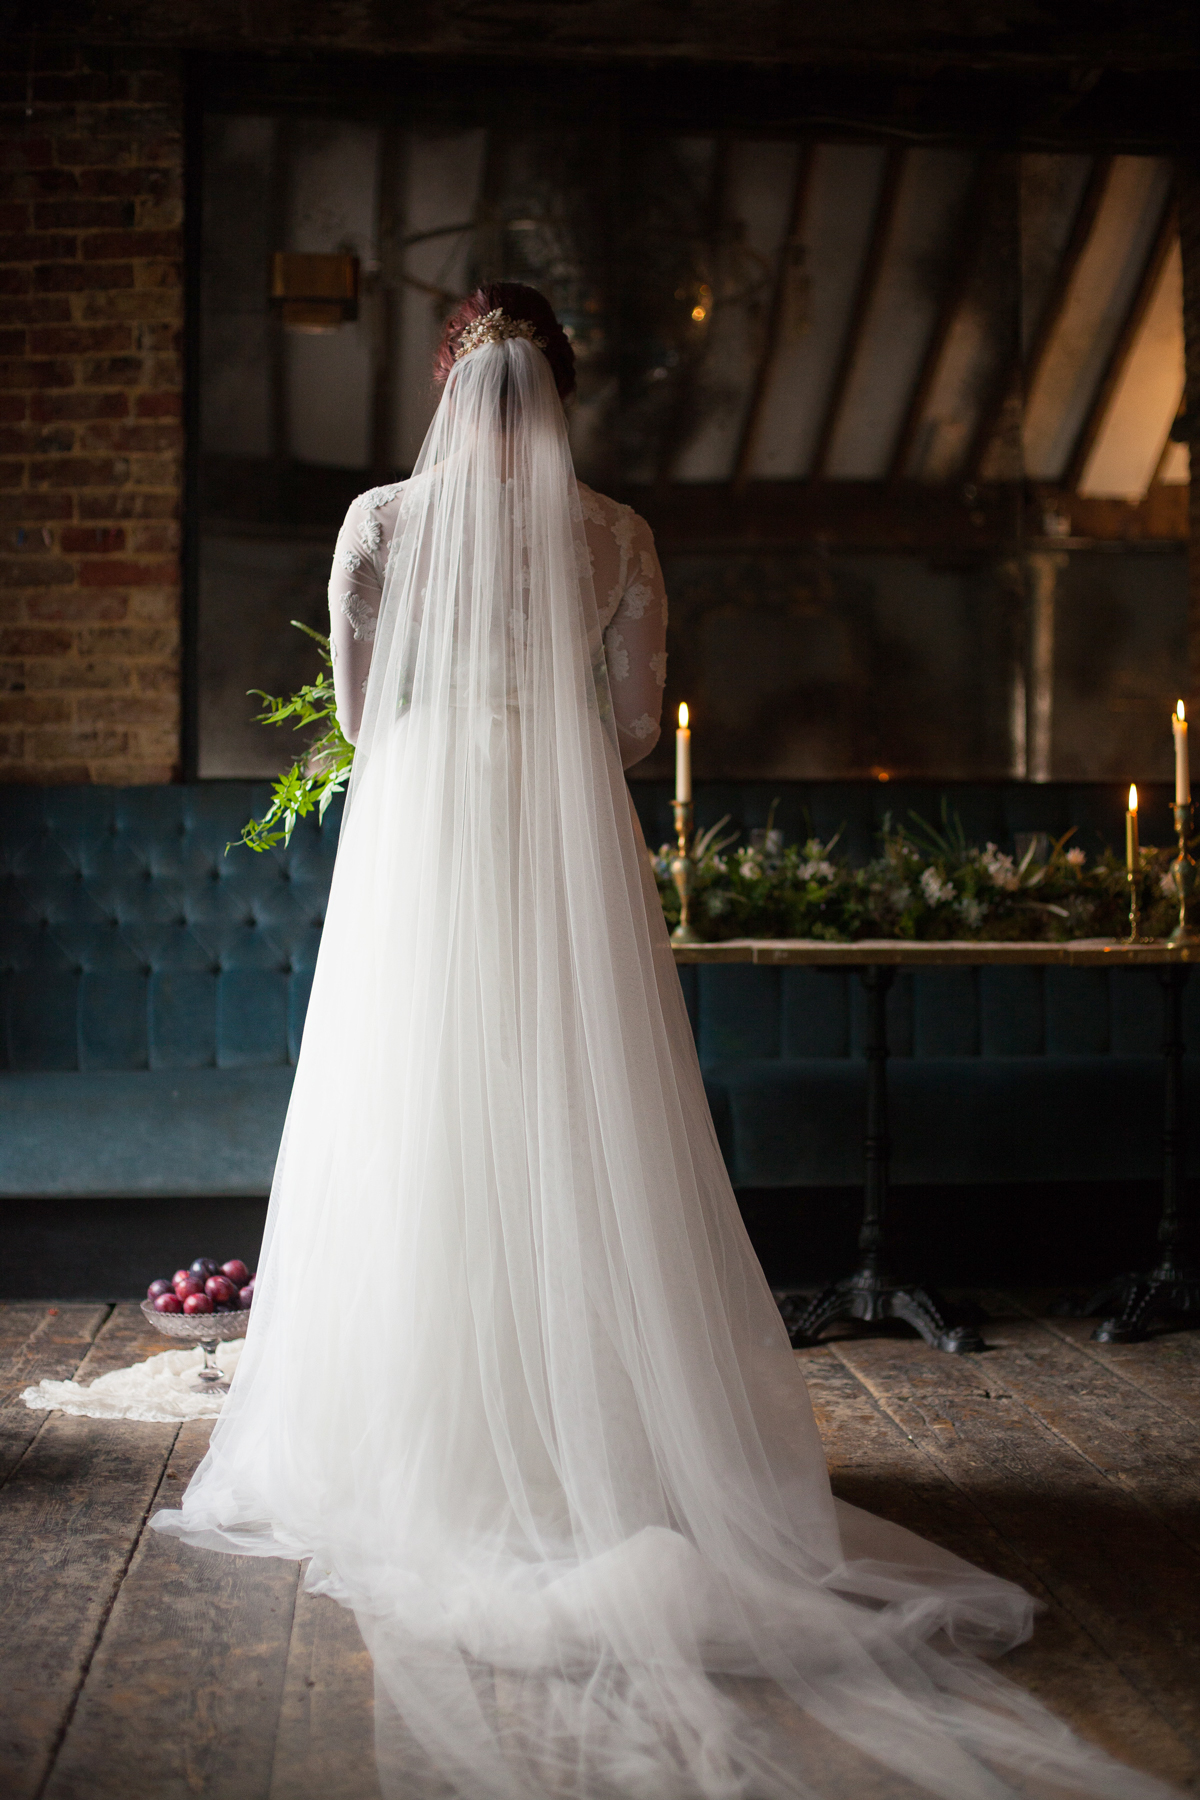 back of bride wearing long veil